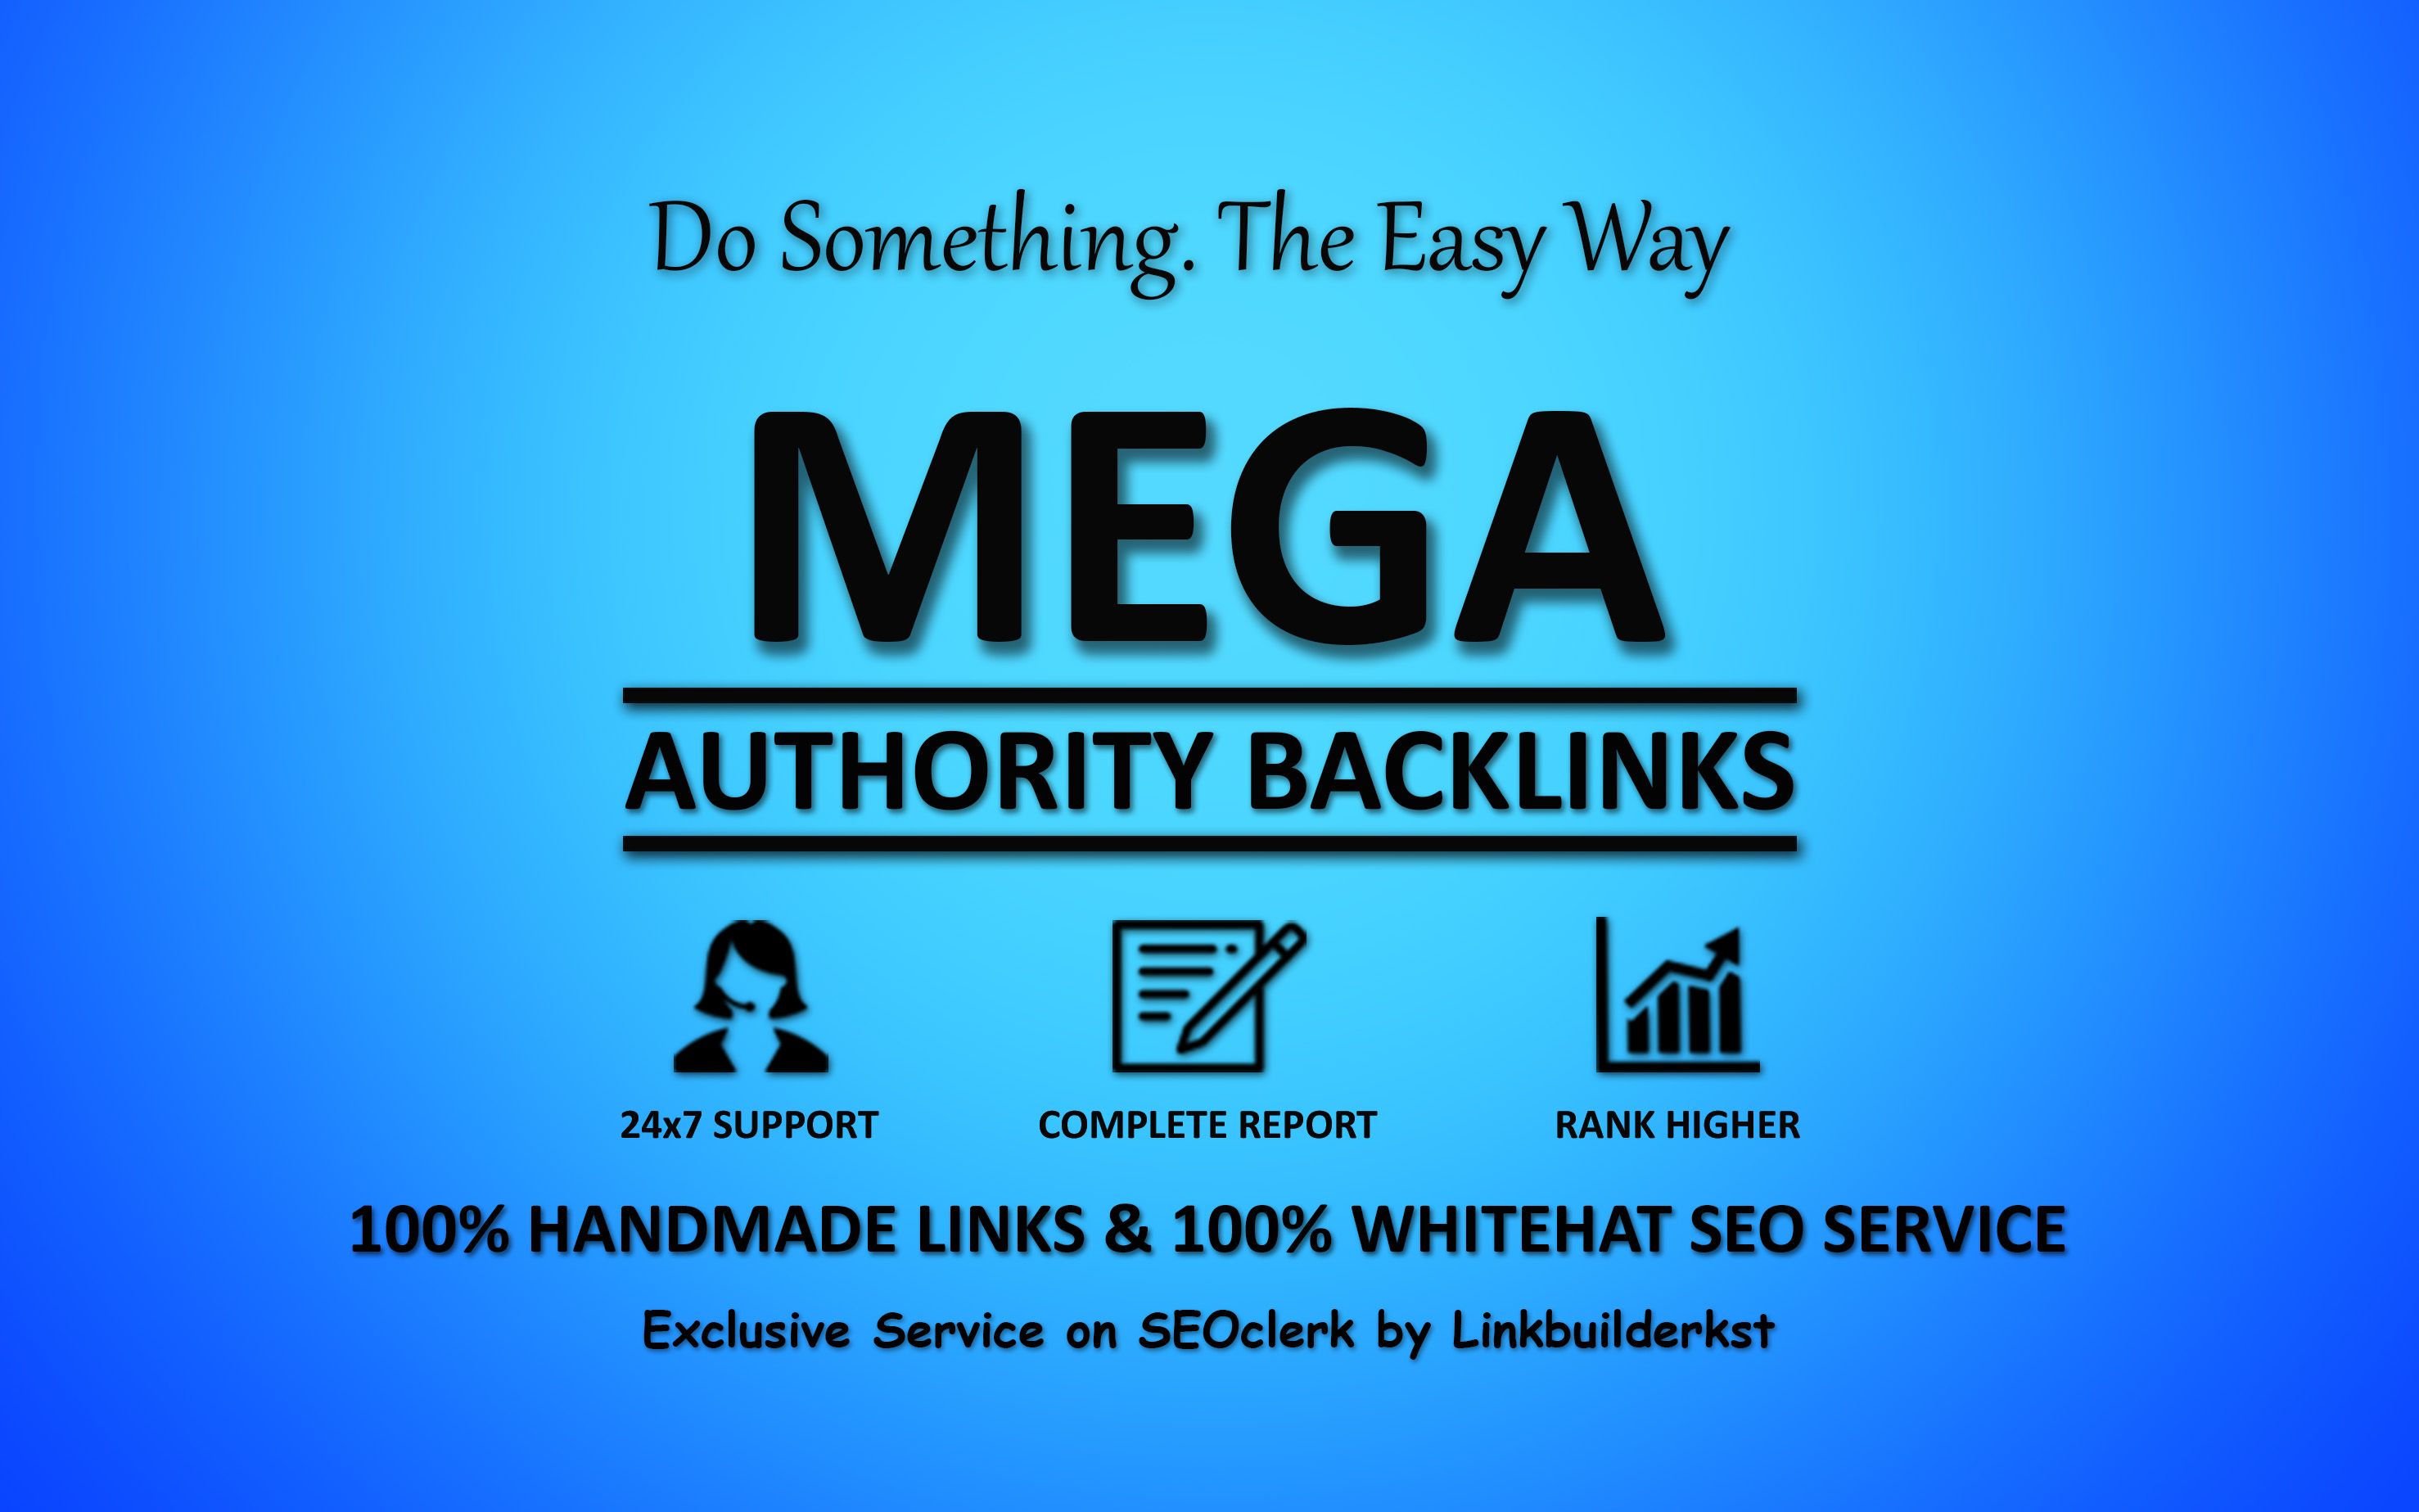 Mega Authority Backlinks - The Best WhiteHat SEO Service To Skyrocket Your Google Rankings